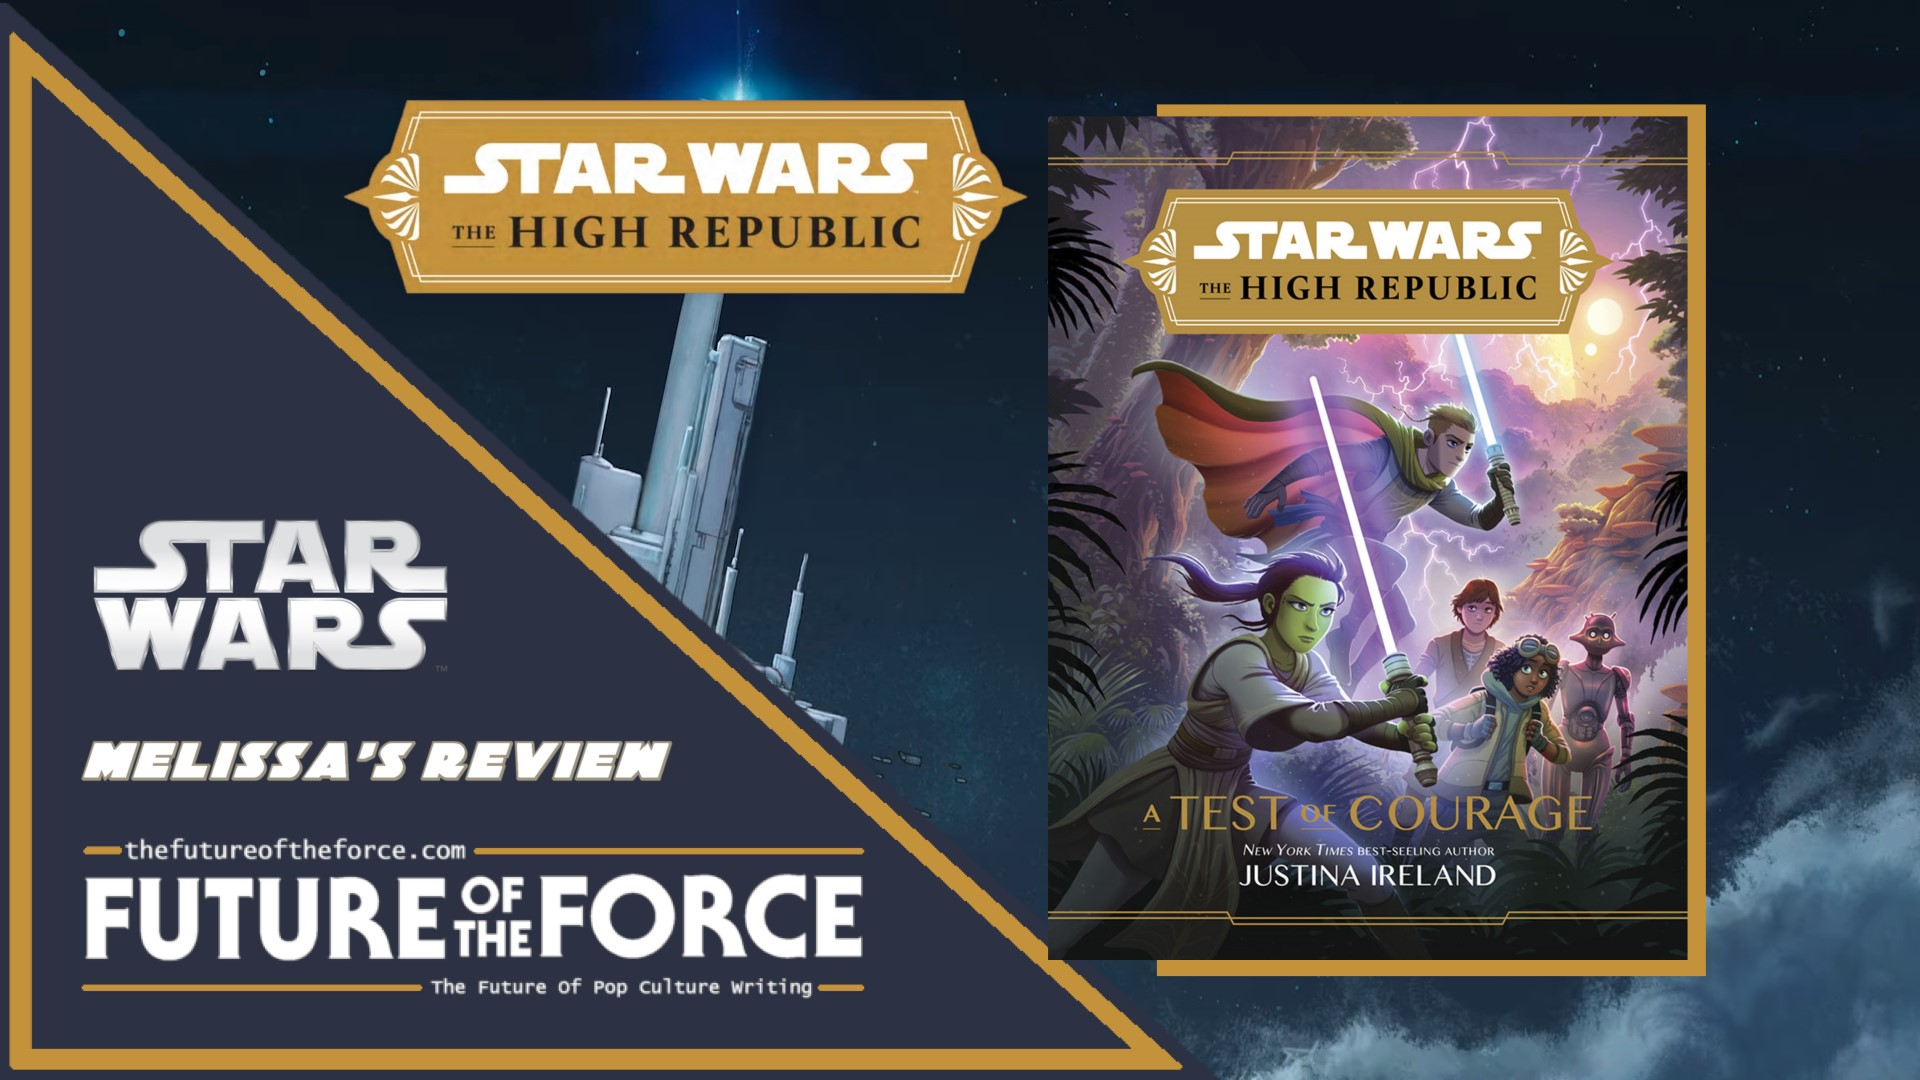 Star Wars The High Republic A Test Of Courage Review (Melissa)